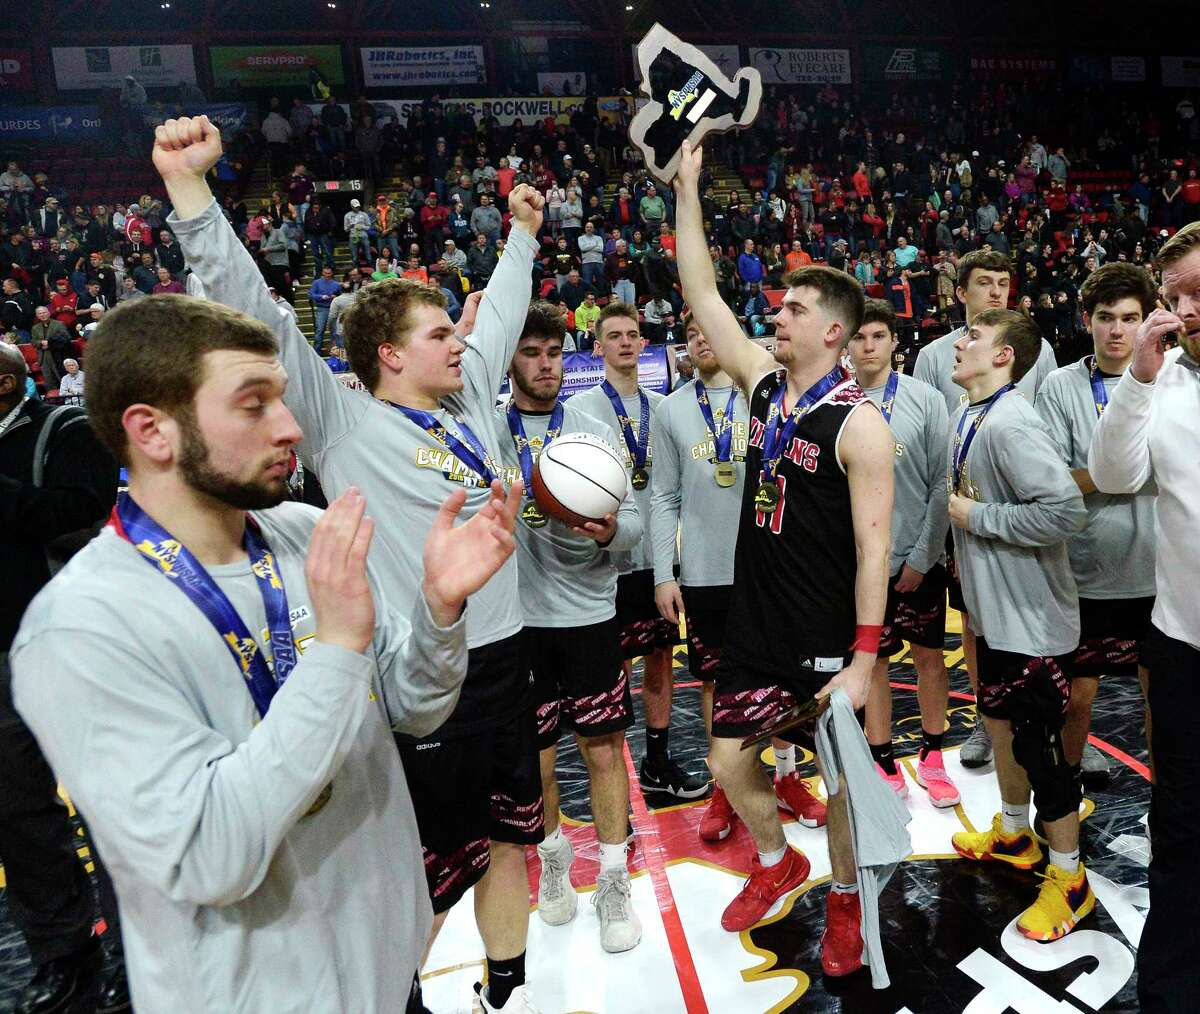 Glens Falls' Joseph Girard III lifts the champ[ionship plaque after the Class B final at the NYSPHSAA Boys Basketball Championships in Binghamton, N.Y., Saturday, March 16, 2019. Glens Falls won the Class B state title with a 75-74 overtime win over Lowville-III. (Adrian Kraus / Special to the Times Union)